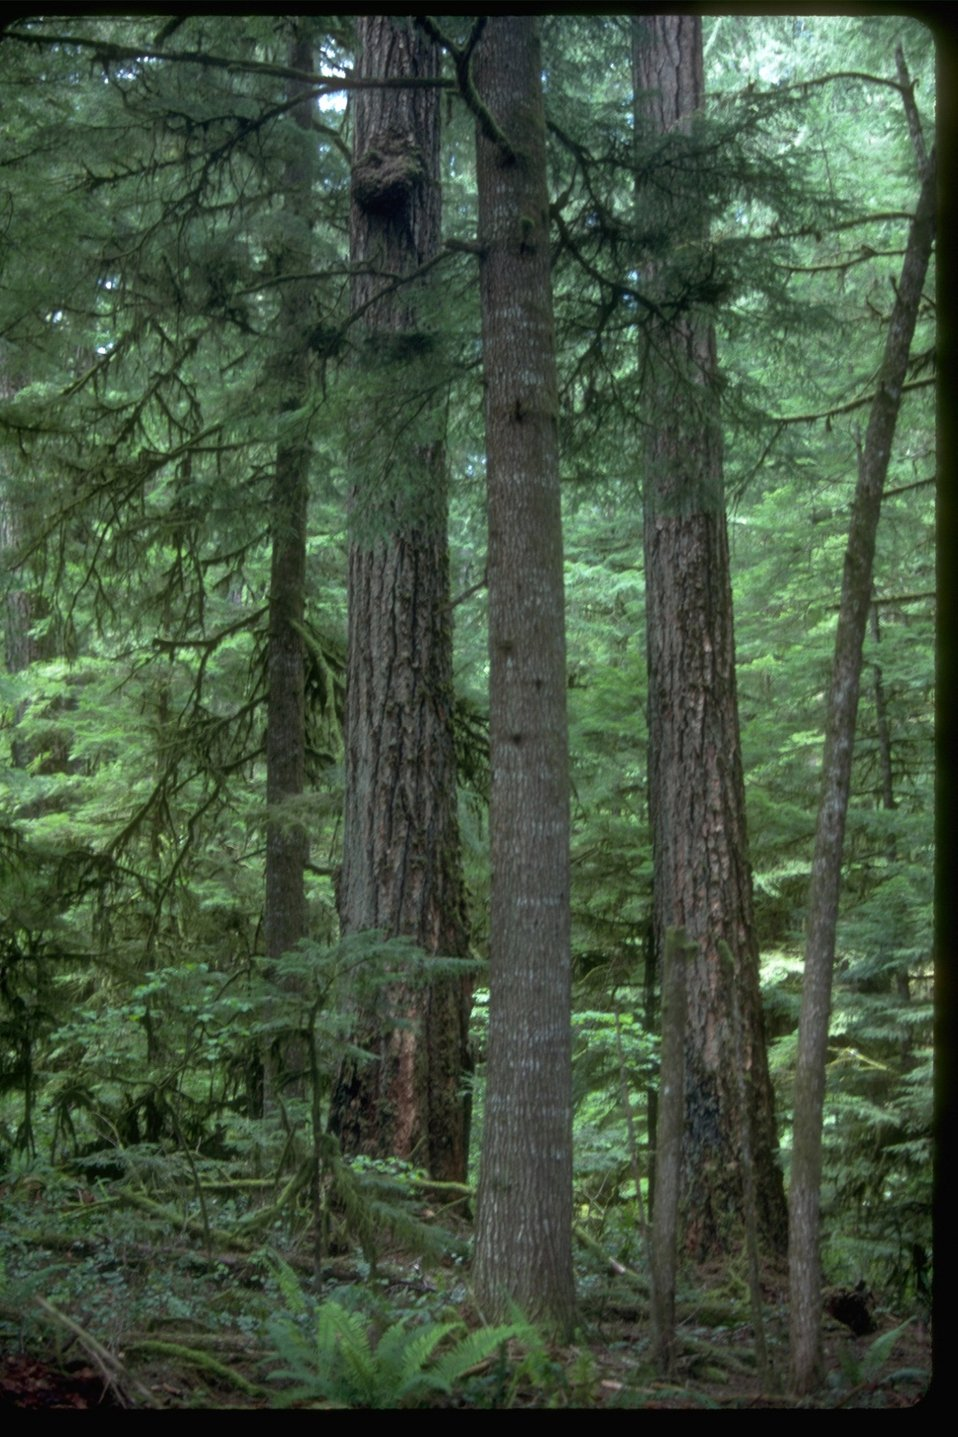 A forest scene of Old Growth.